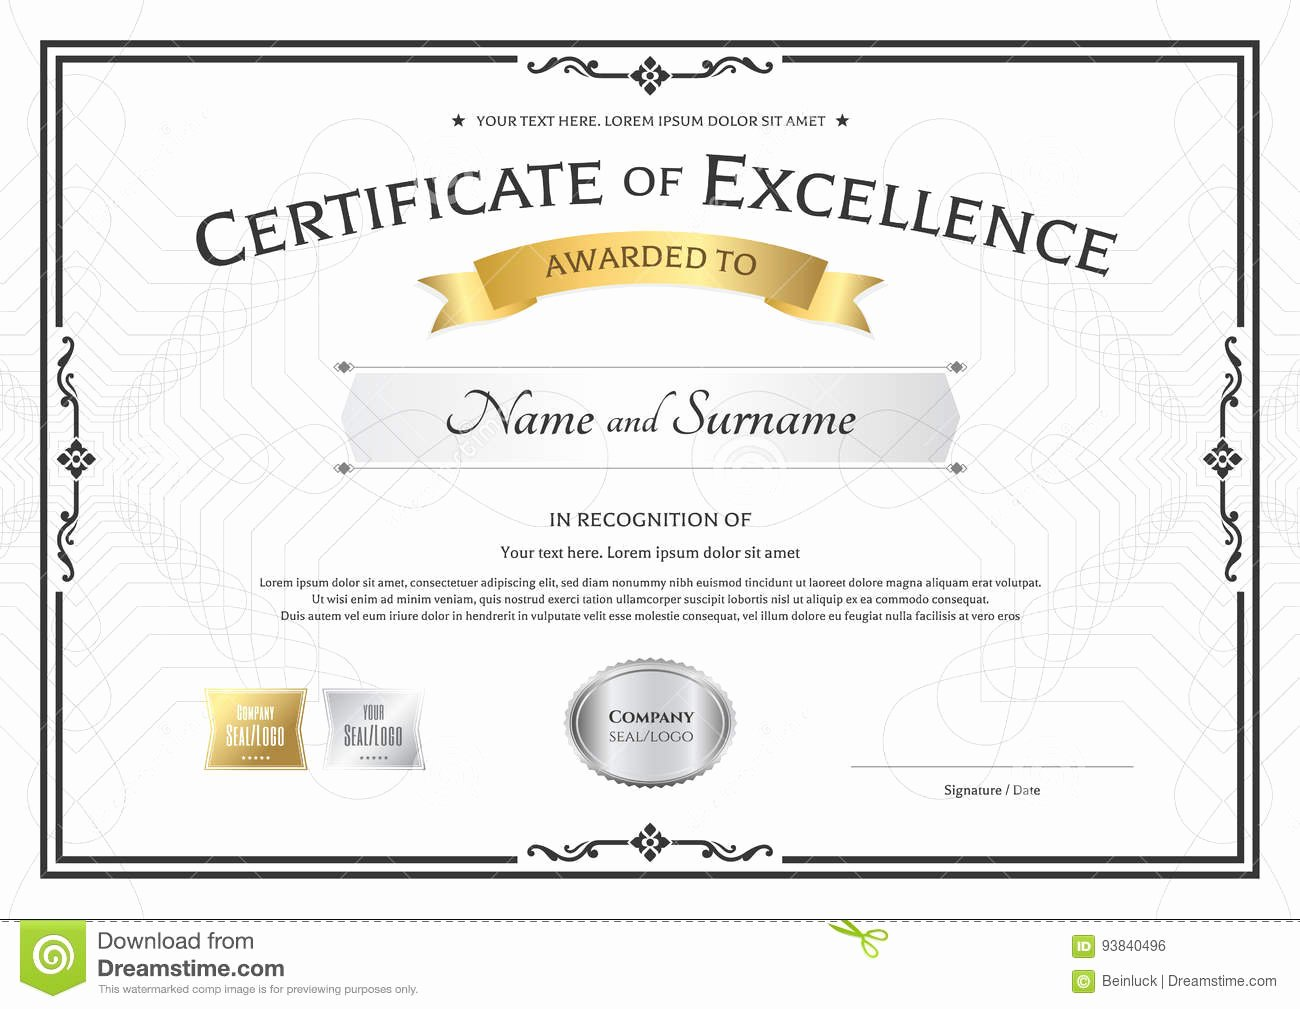 Certificate Of Excellence Template Elegant Certificate Excellence Template with Gold Award Ribbon